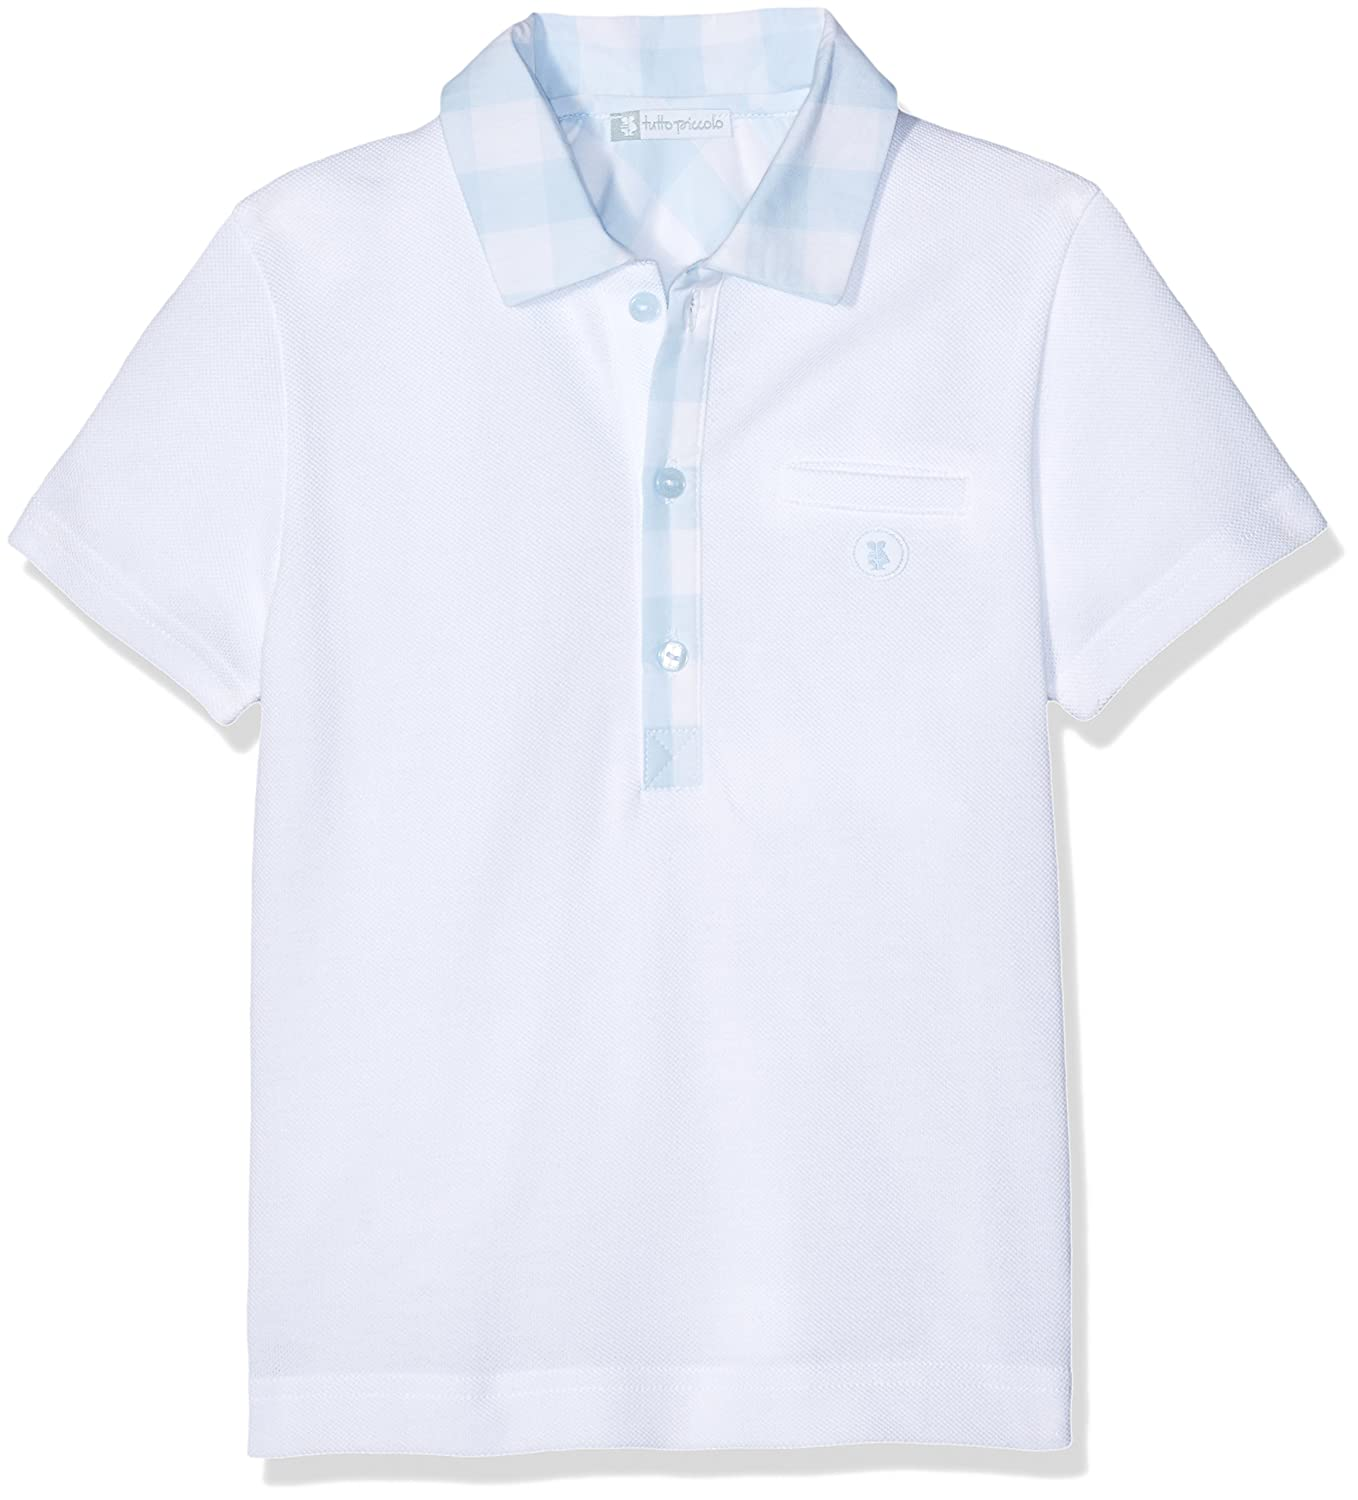 Tutto Piccolo Toile De Jouie Polo, Multicolor (Blanco/Celeste), 86 ...